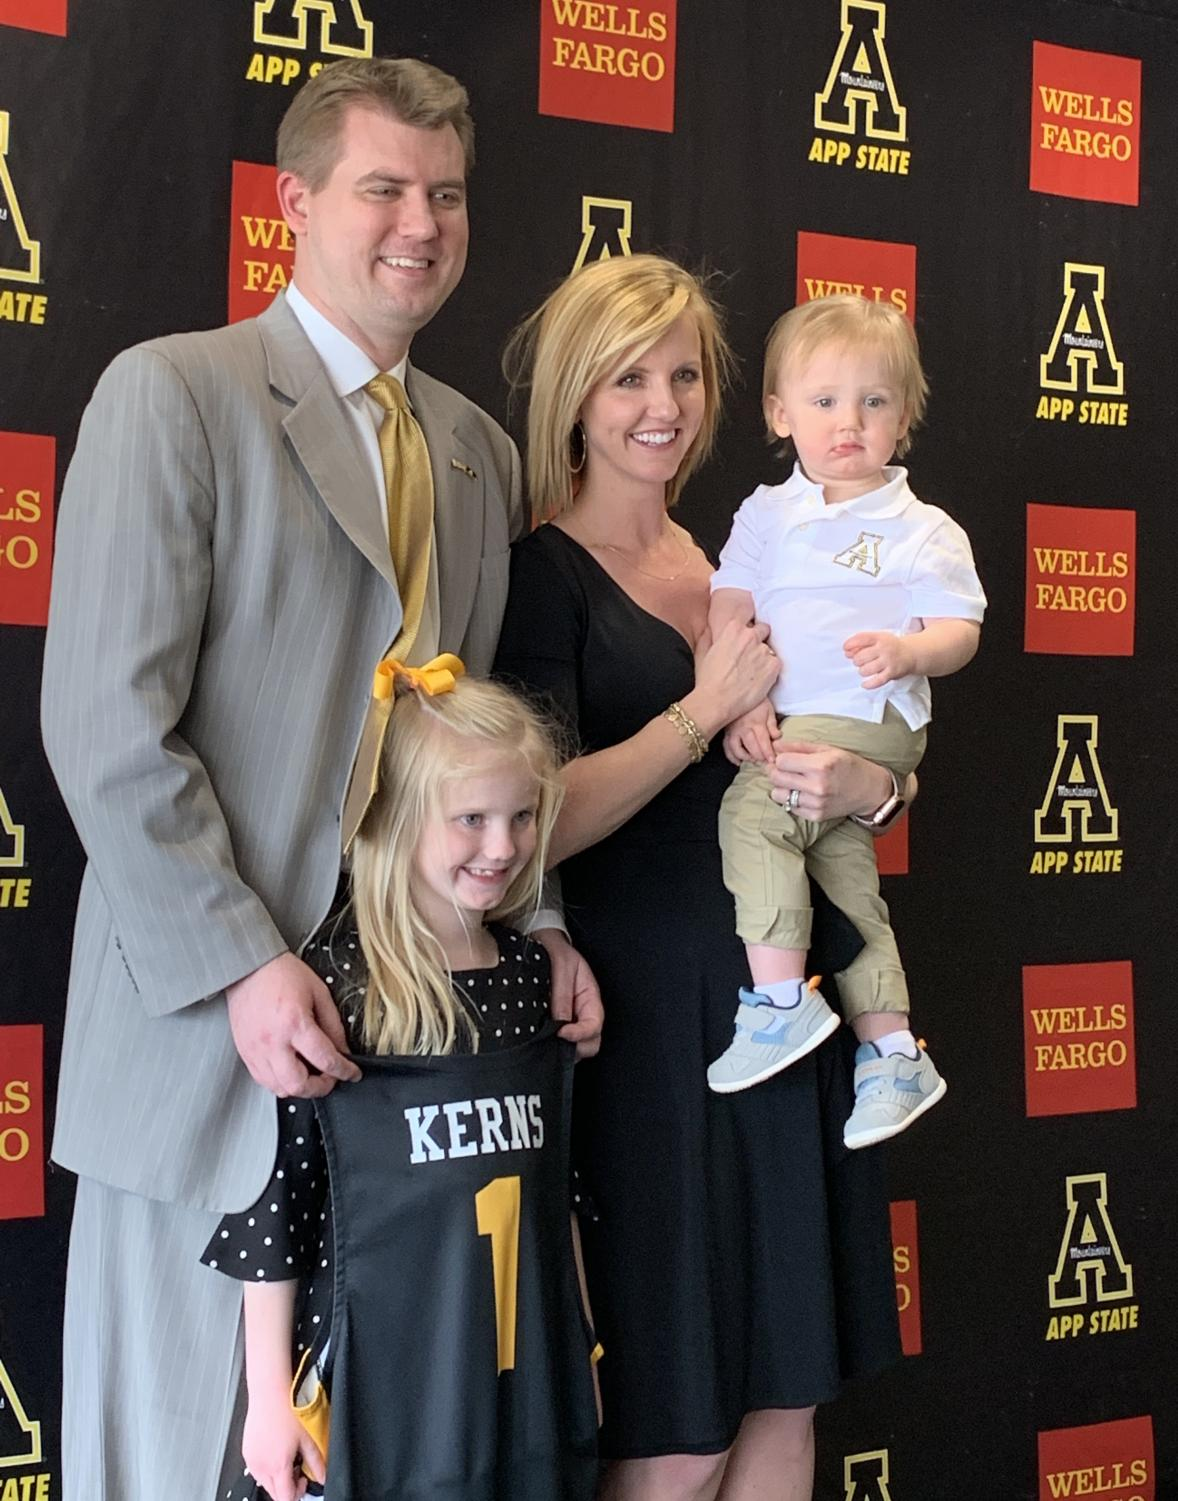 New head basketball coach Dustin Kerns pictured with his wife Brittany, daughter Emory and son Riggs.